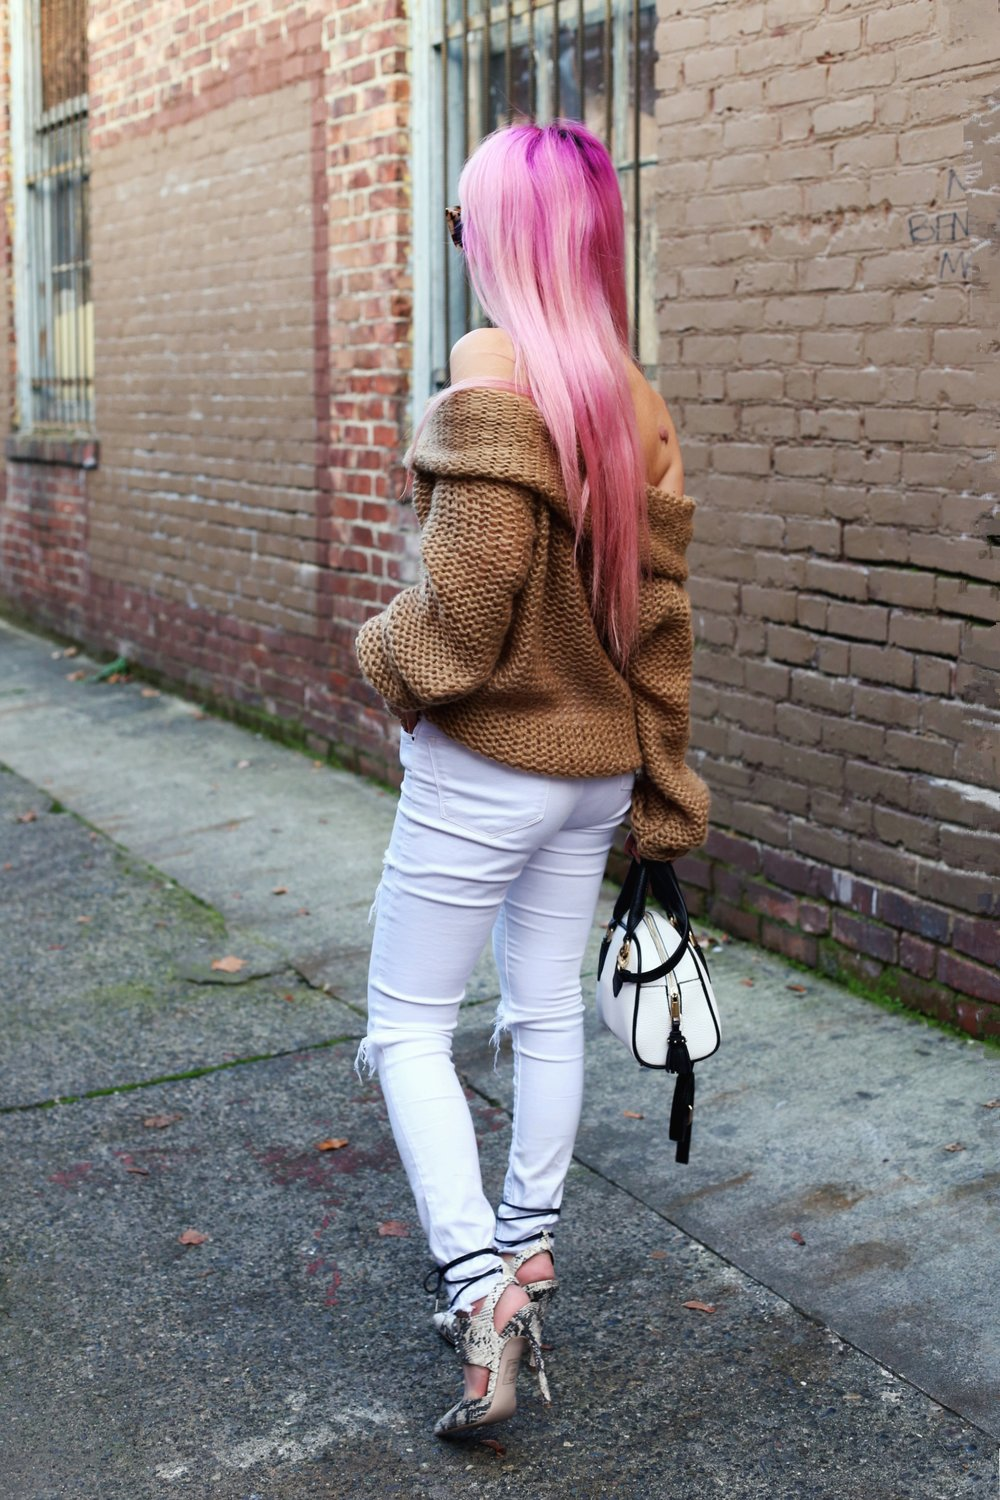 Urban Outfitters Sunglasses_Camel Off The Shoulder Sweater_TOPSHOP white jeans_ZARA Bag_ASOS Snake Skin Heels_Shop Dixi Lace Choker_Aika's Love Closet_Seattle Fashion Blogger_Japanese_Pink Hair_Colored Hair 8